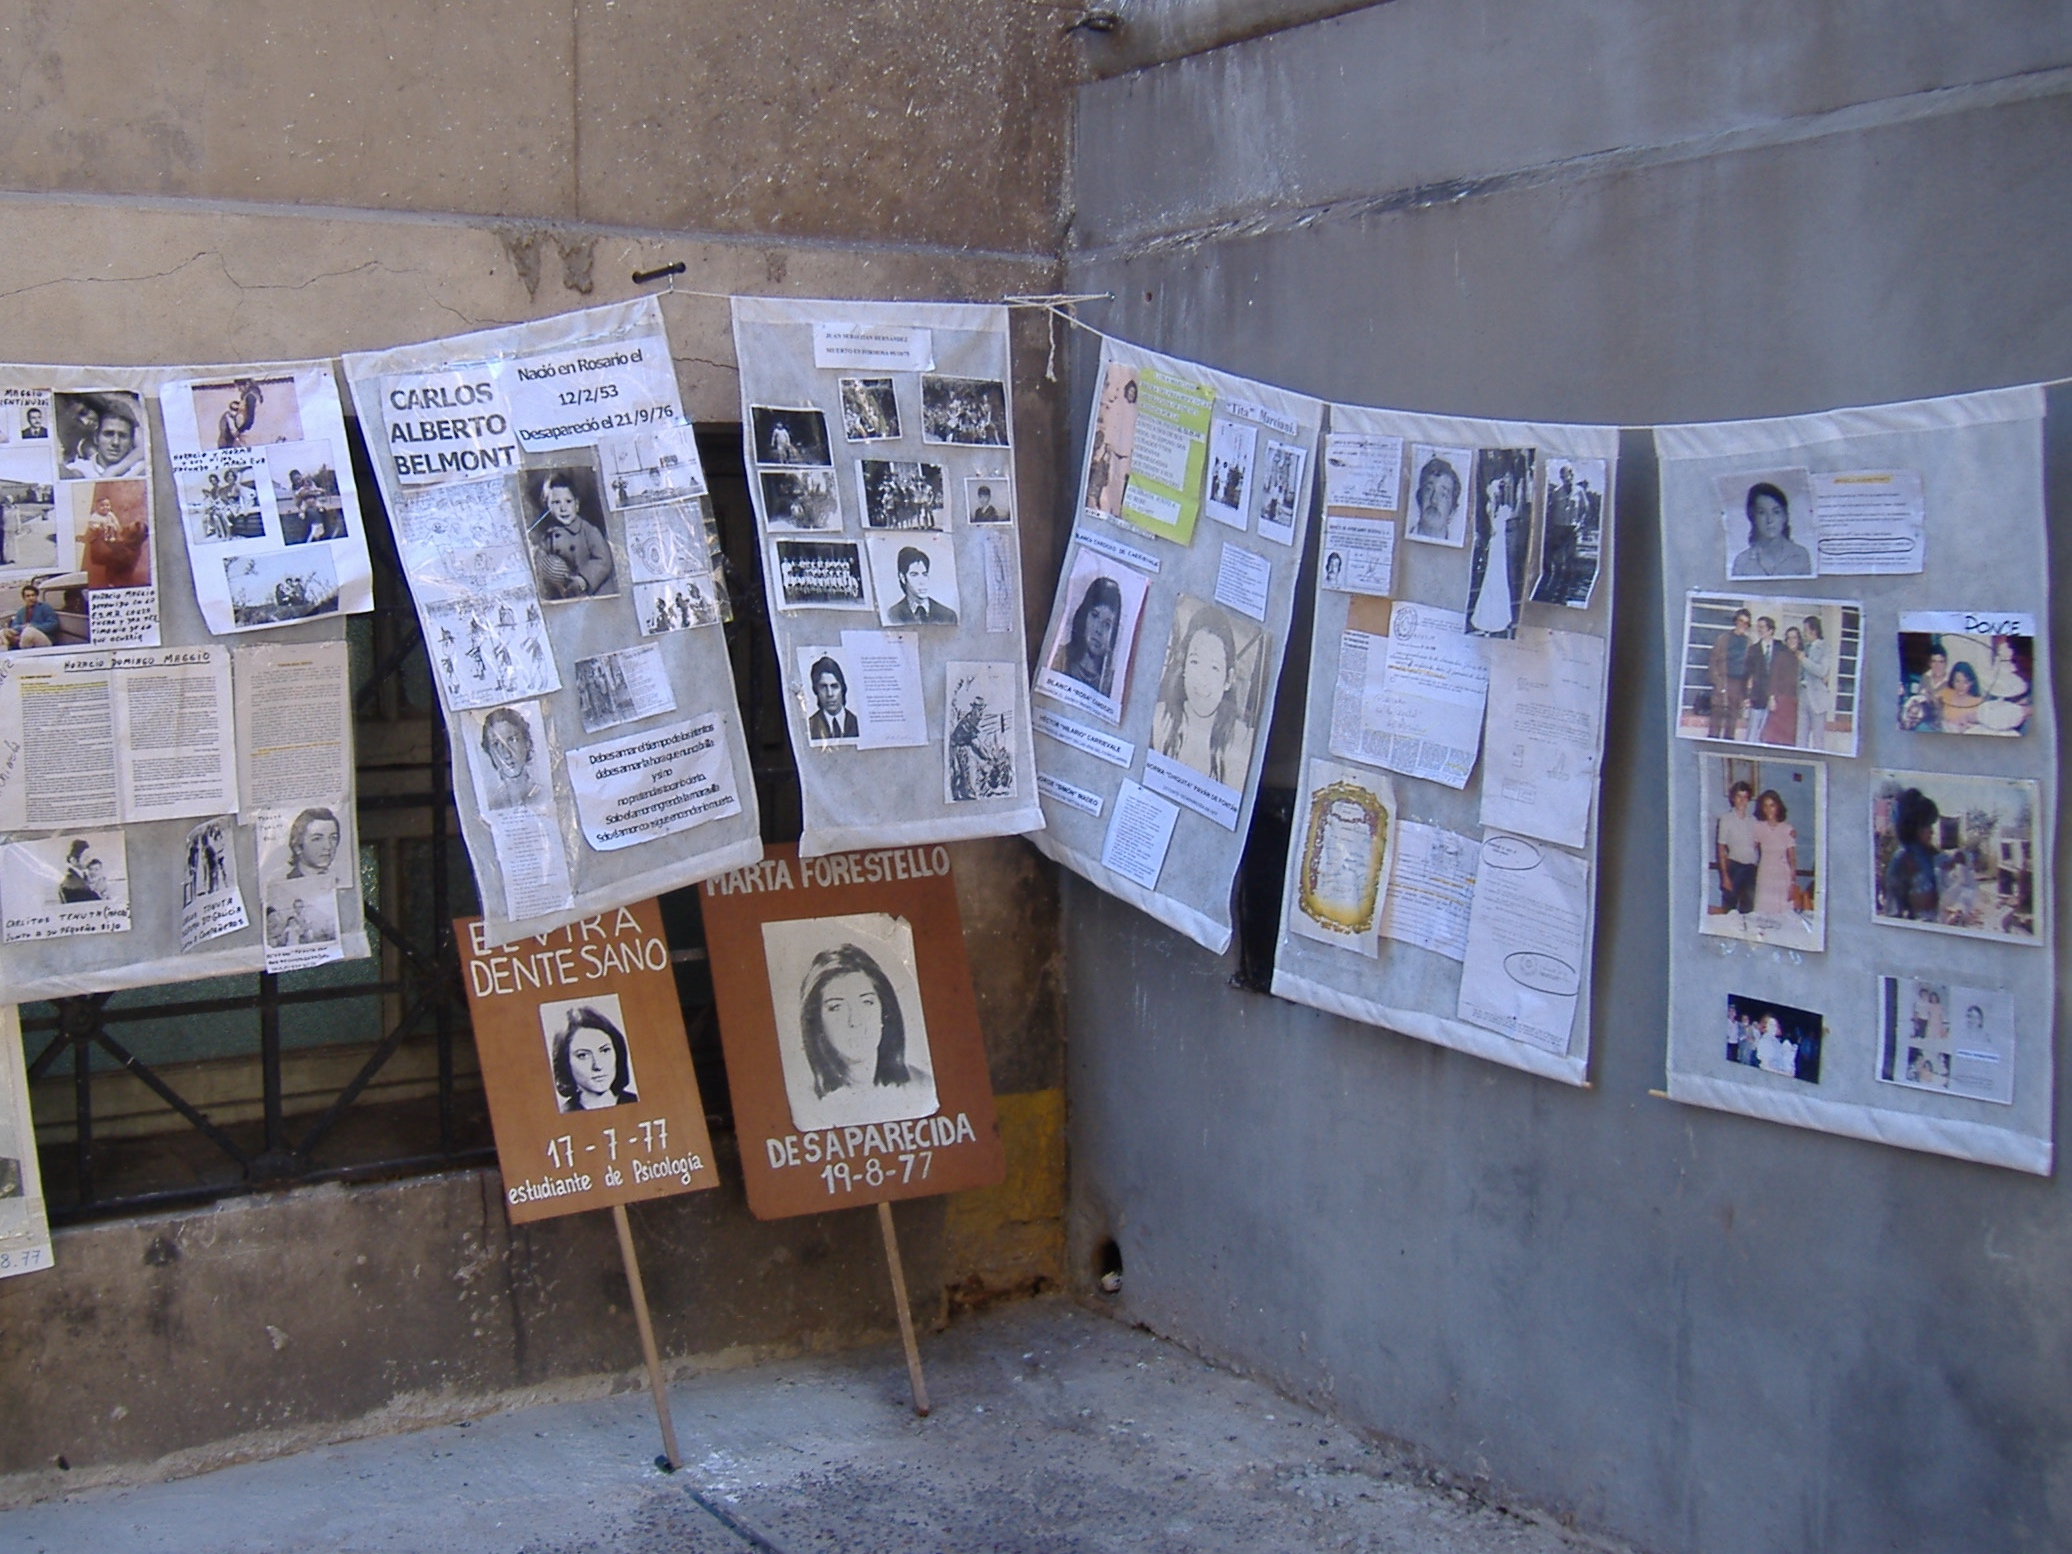 Photos of disappeared people at an illegal detention center in Rosario, Argentina, 2006. (Photo: Wikimedia Commons)